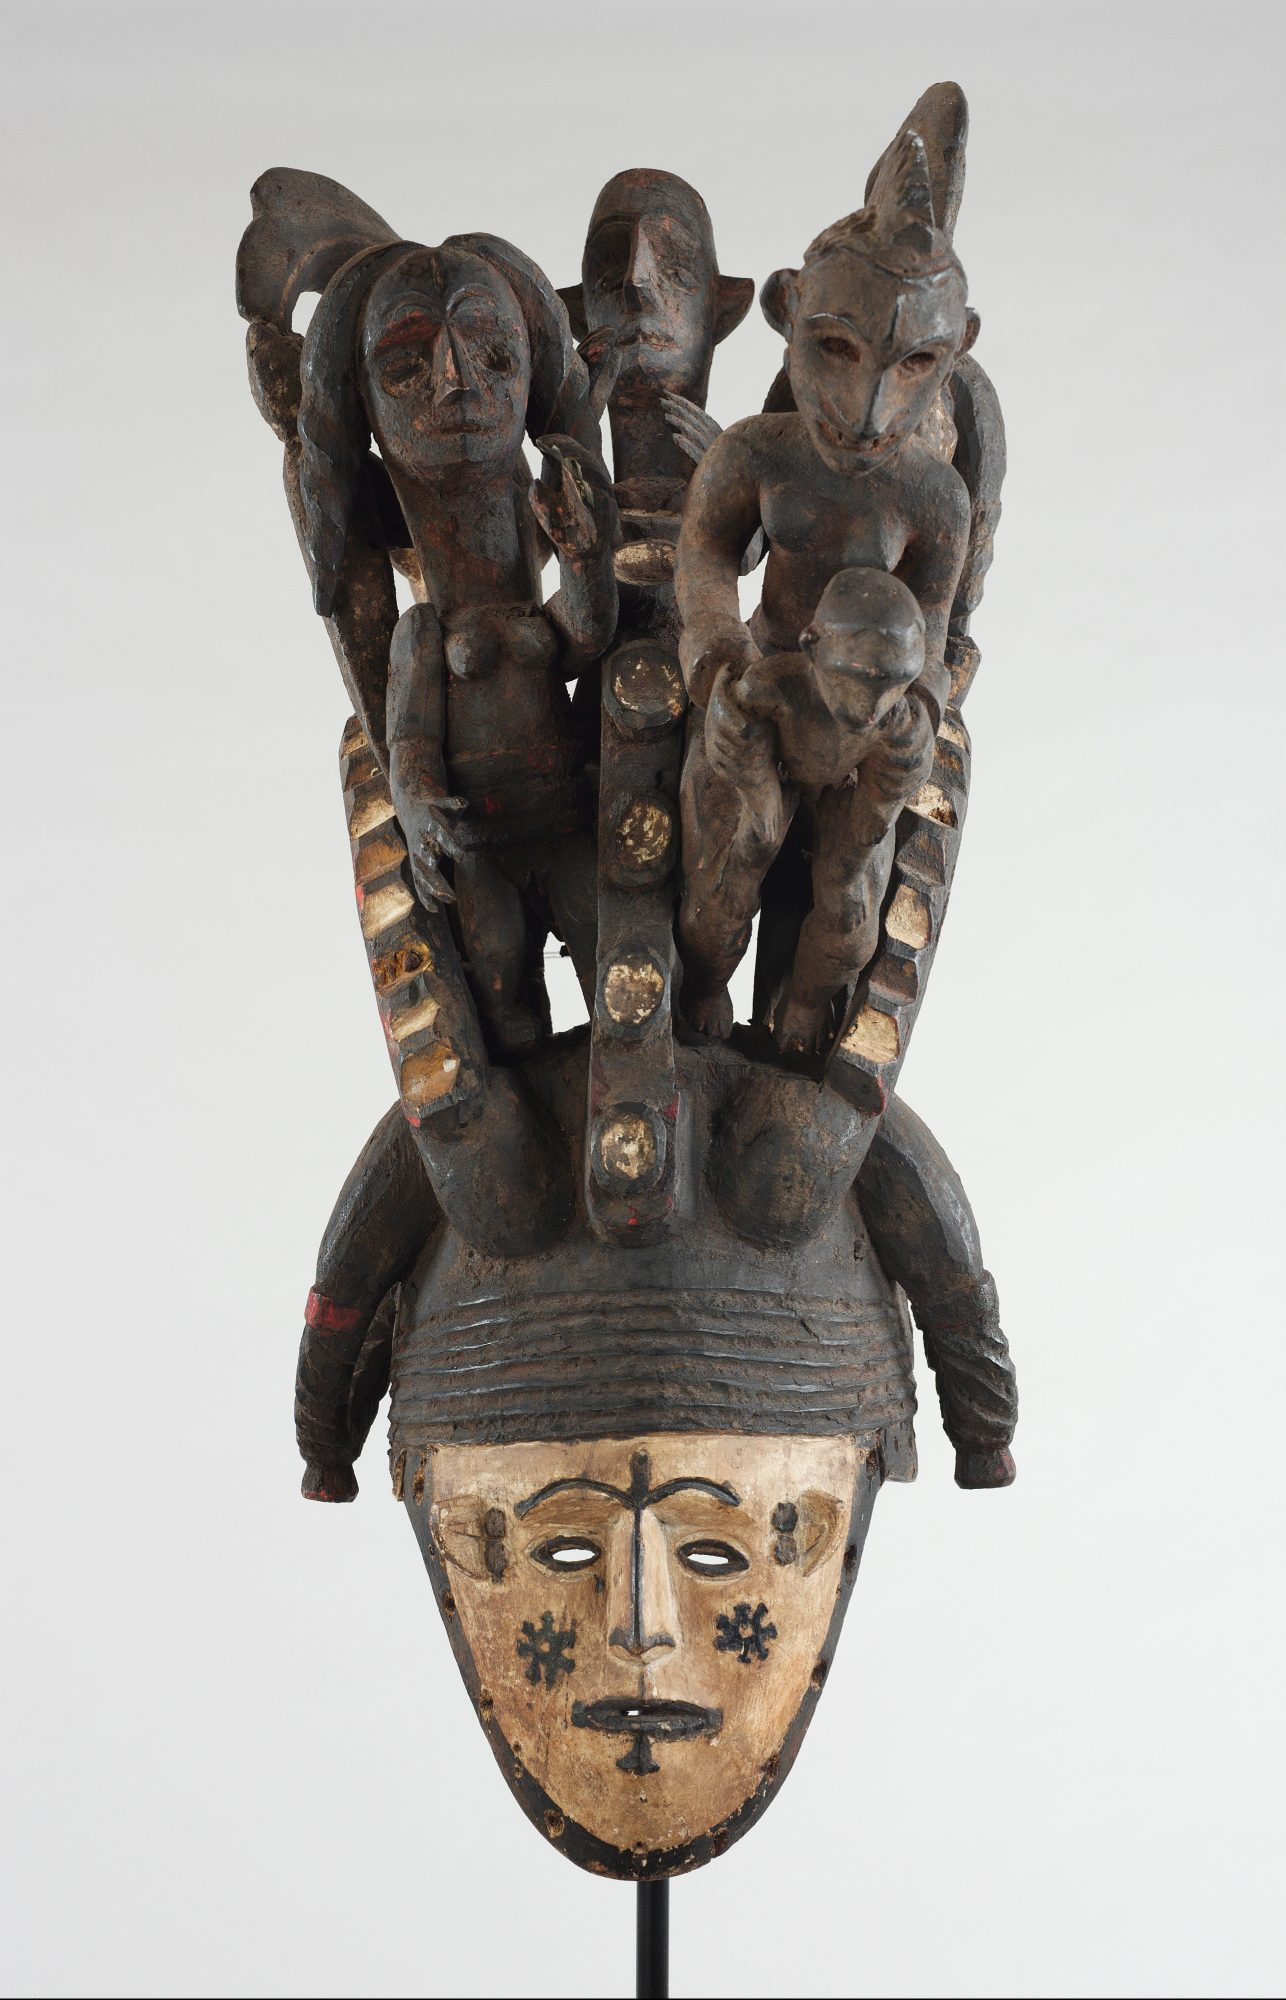 Igbo people. Ikorodo Mask, c. 1920–1950. Wood, 34 1/2 x 10 x 18 in. Gift of Dr. Oliver E. and Pamela F. Cobb, Class of 1952, M.2007.1.2